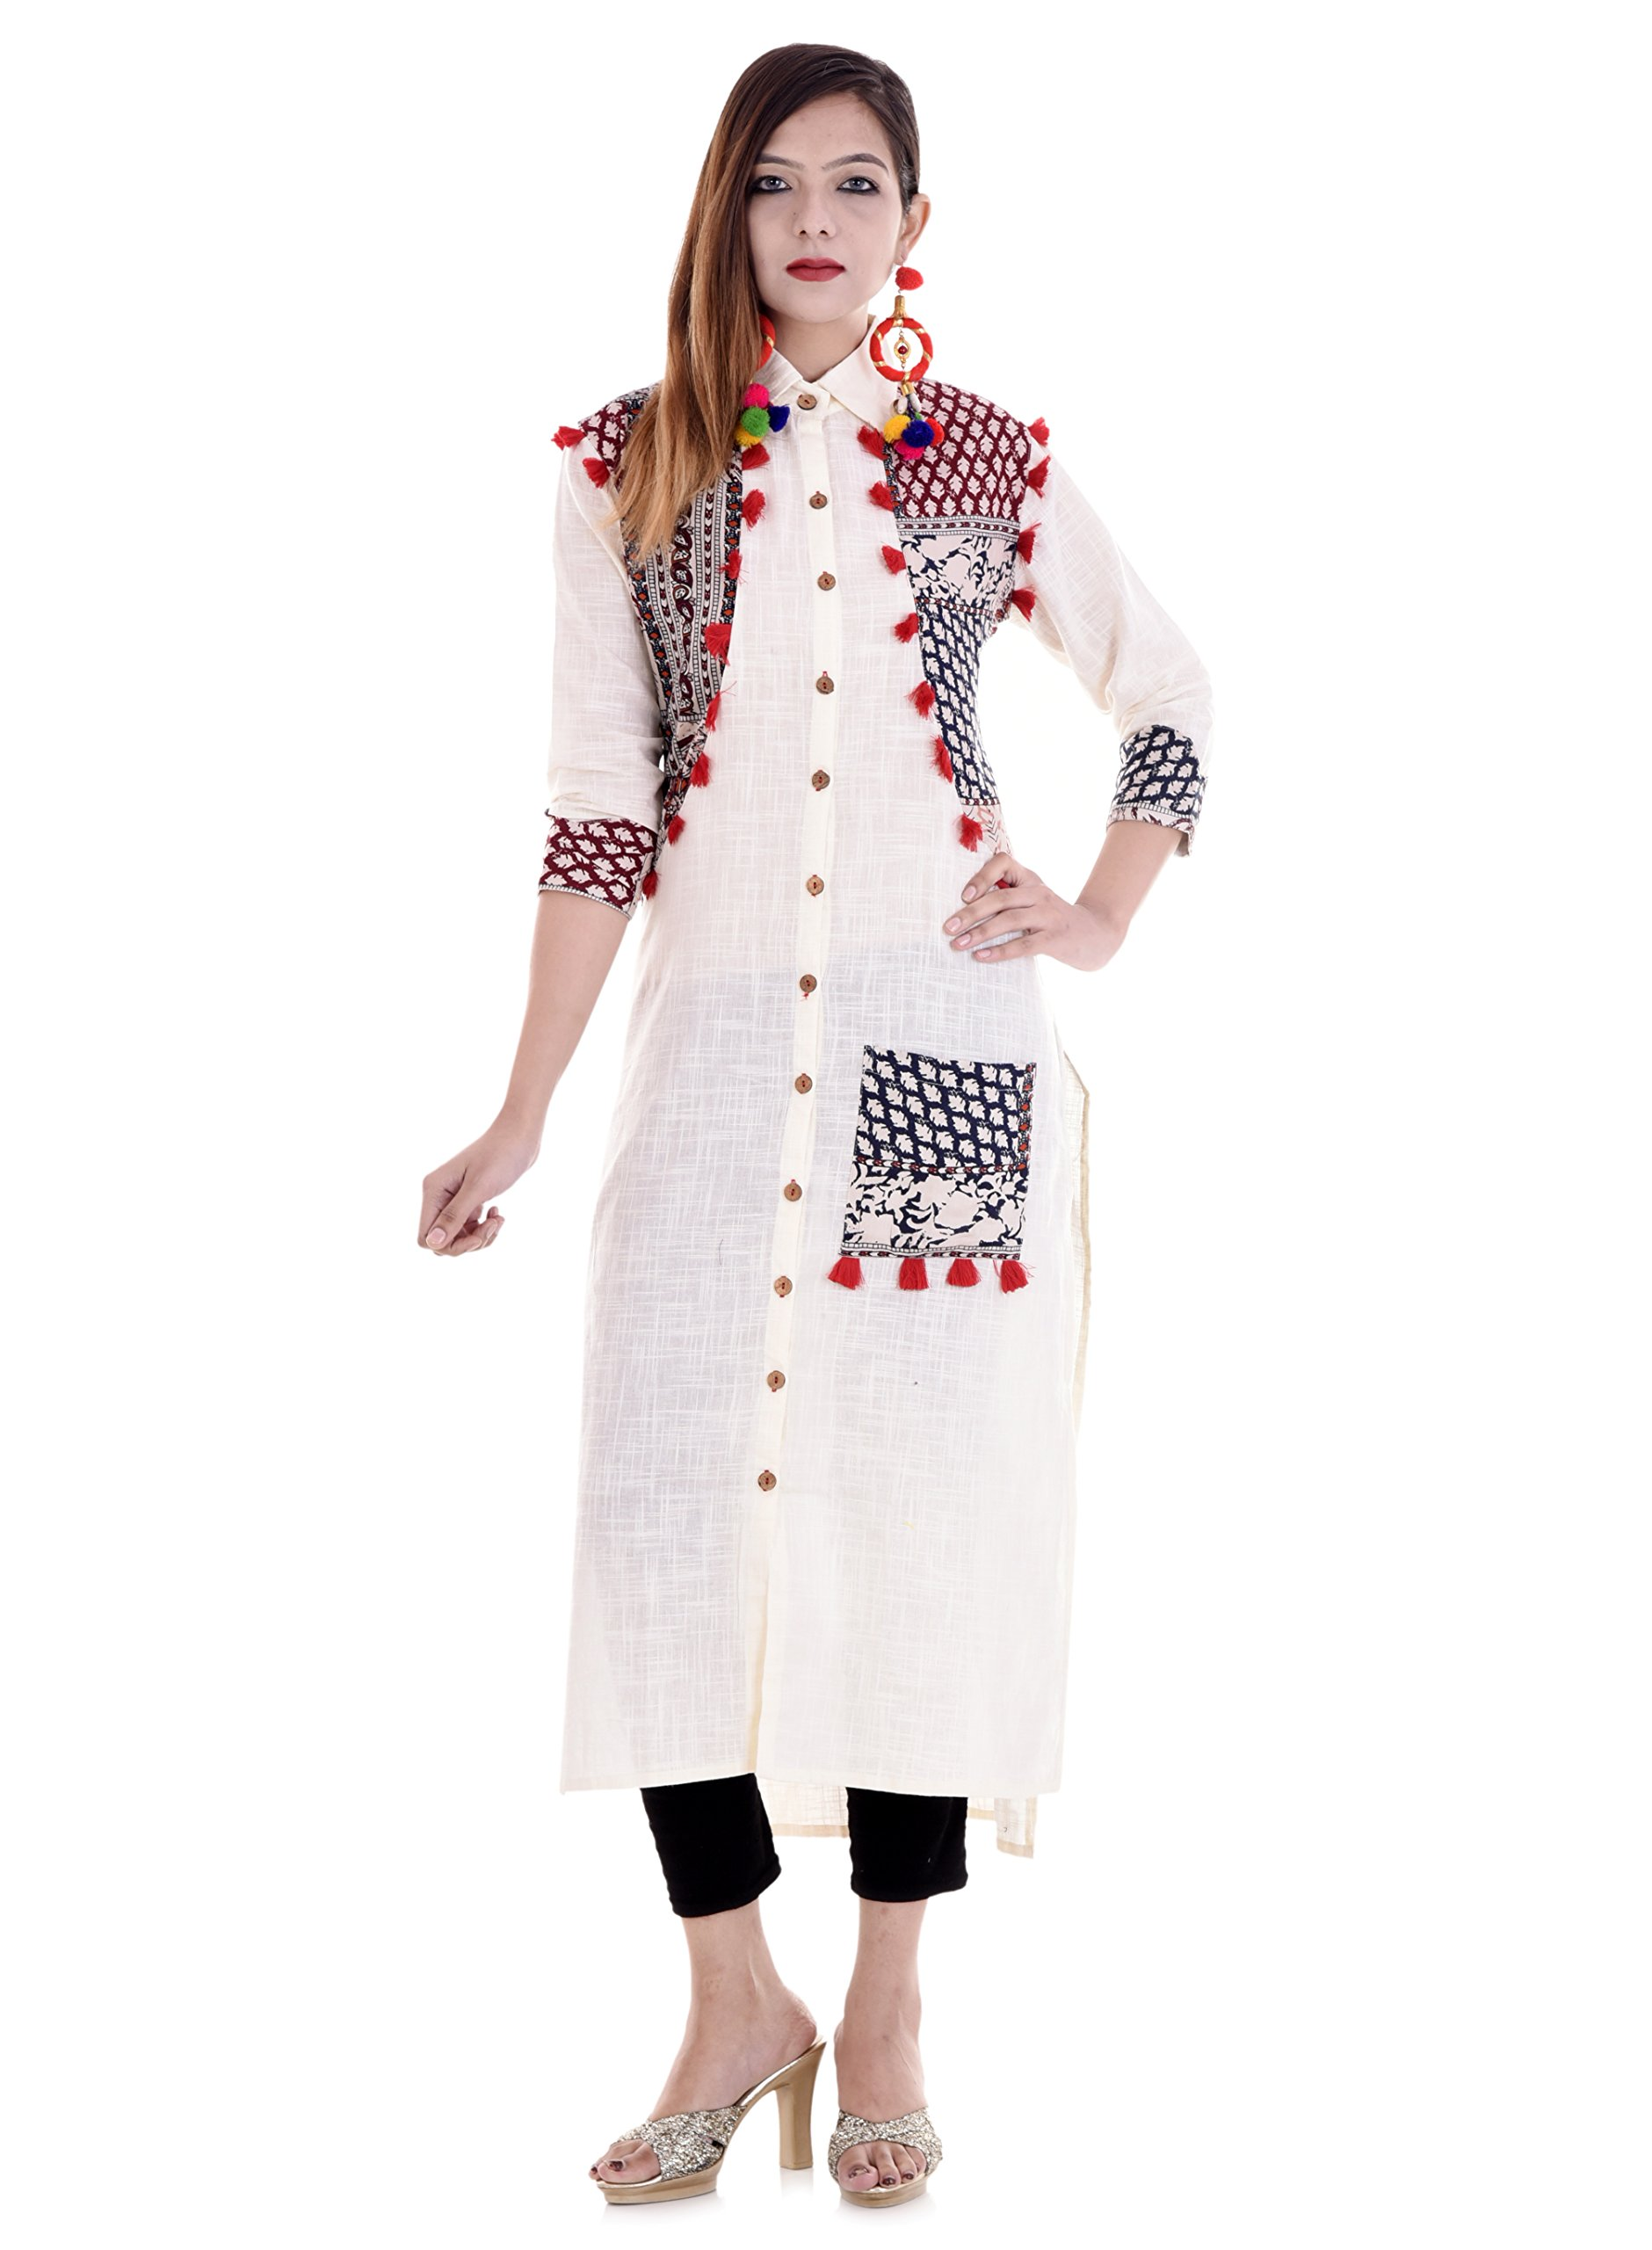 Vihaan Impex Kurtis for Women Kurtas for Women Indian White Color Kurti for Women